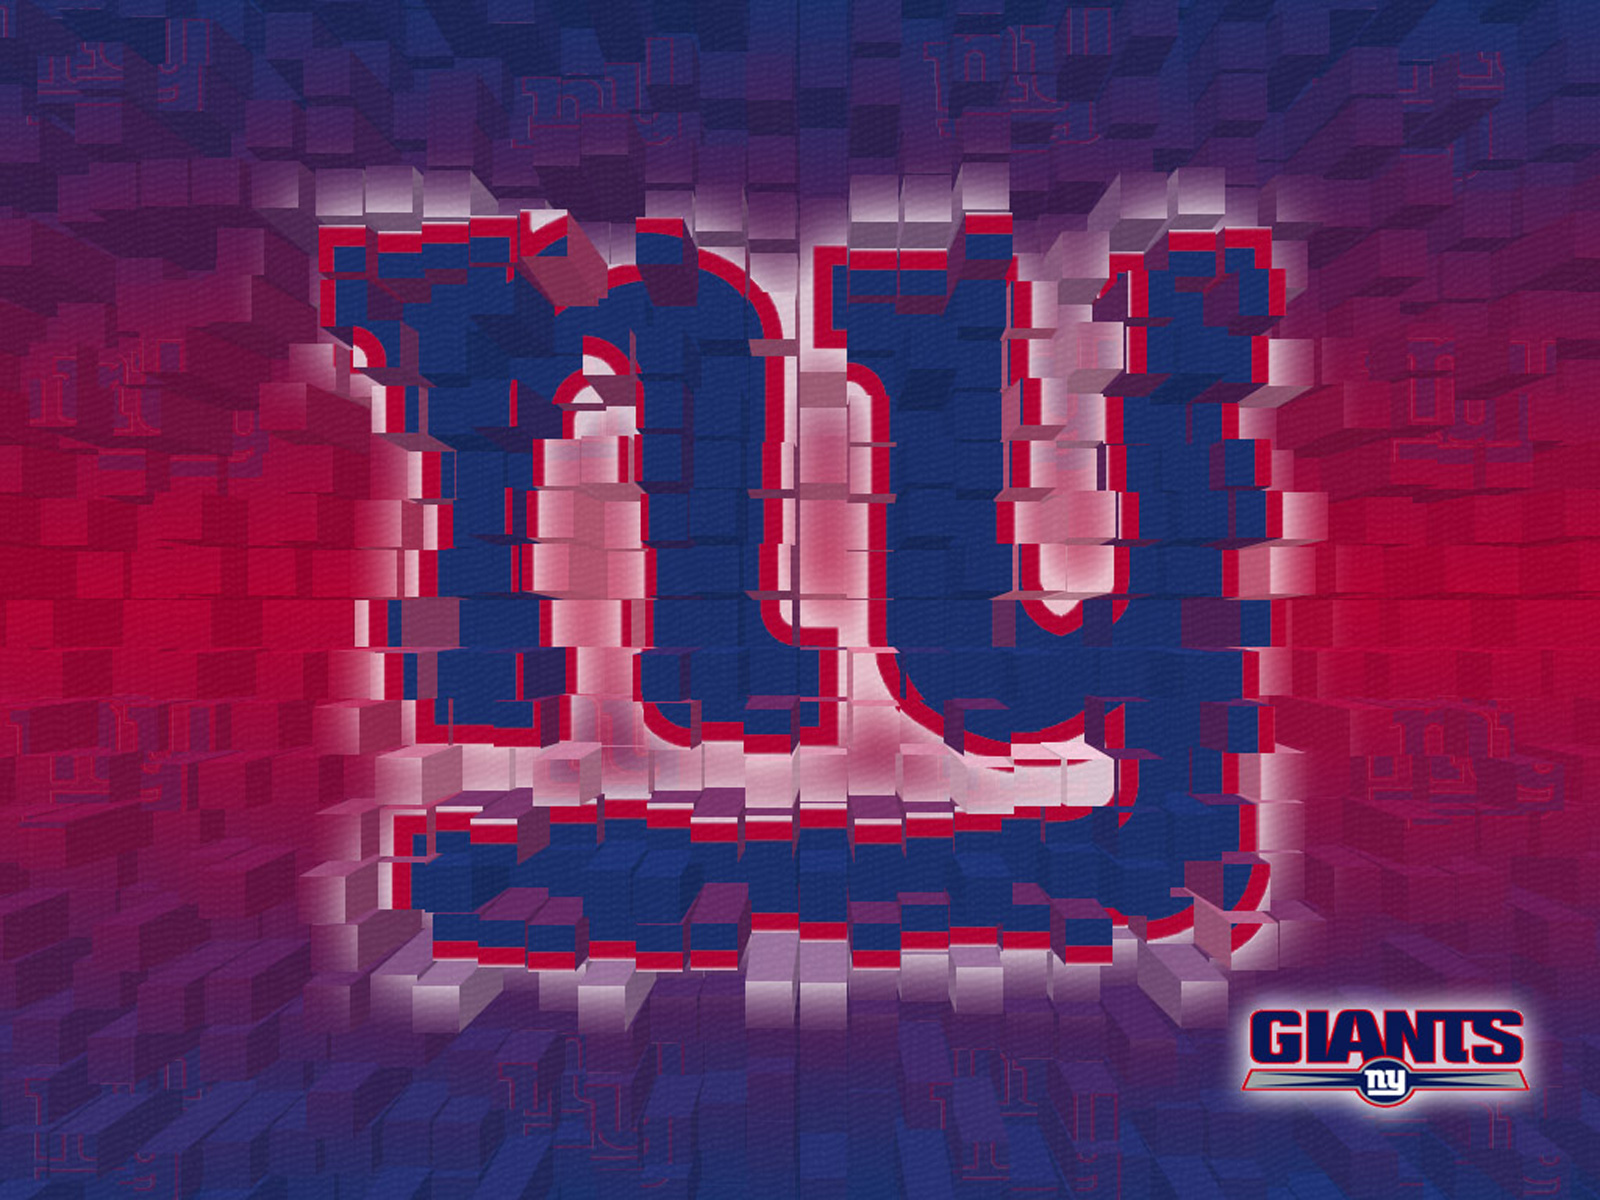 Wallpapers of your favorite nfl football team new york giants